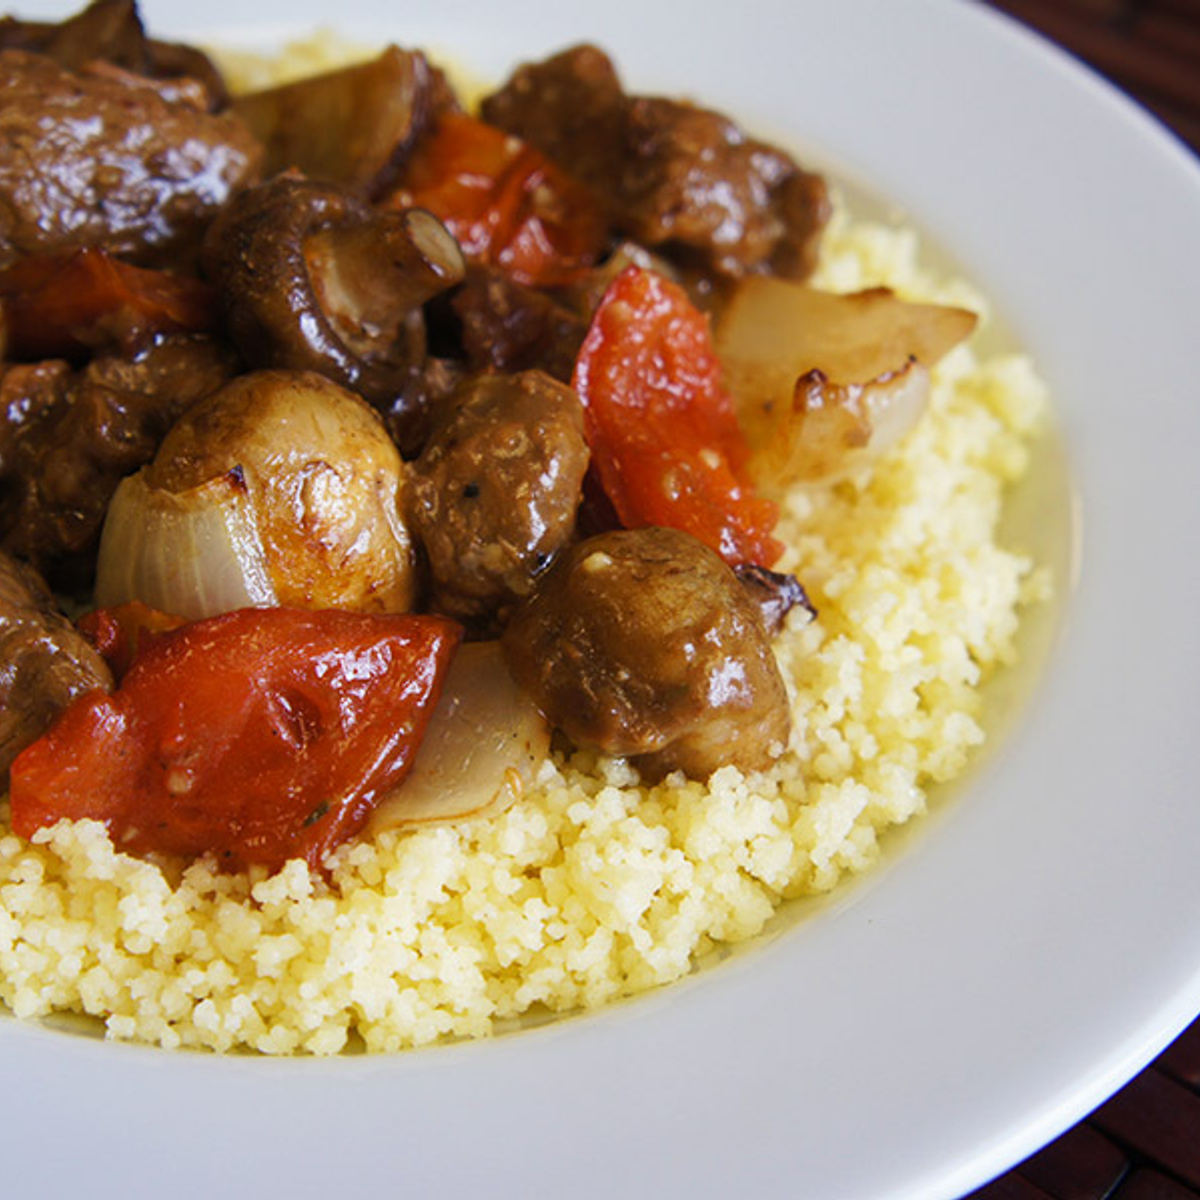 Savory Beef Stew with Roasted Vegetables Recipe